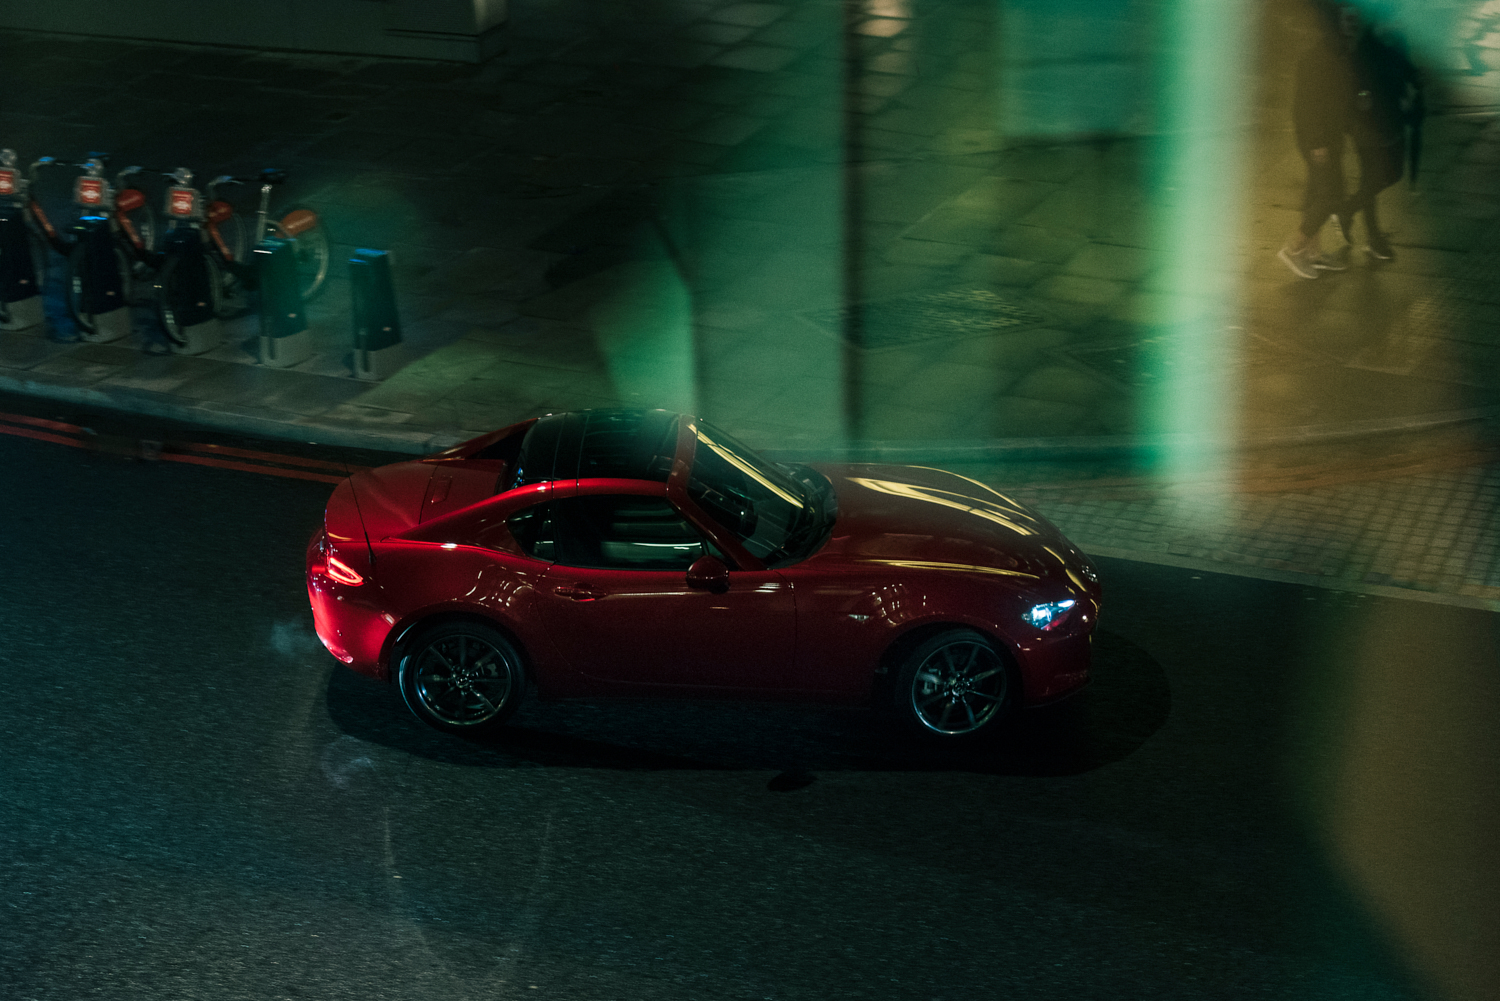 Tim_Cole-automotive-photography-mazda-car-photographer 13.jpg